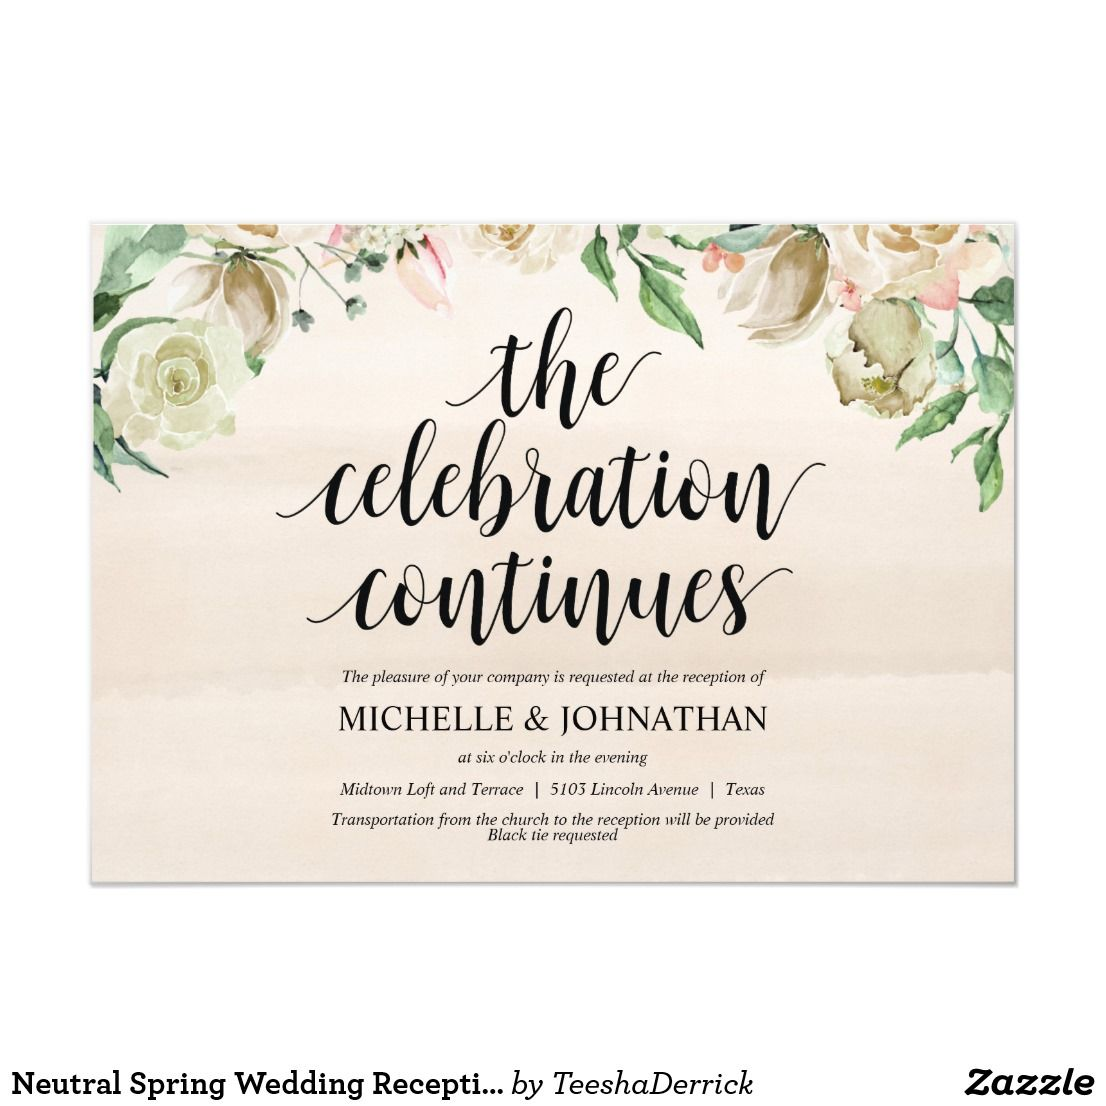 Neutral Spring Wedding Reception Invitation Card